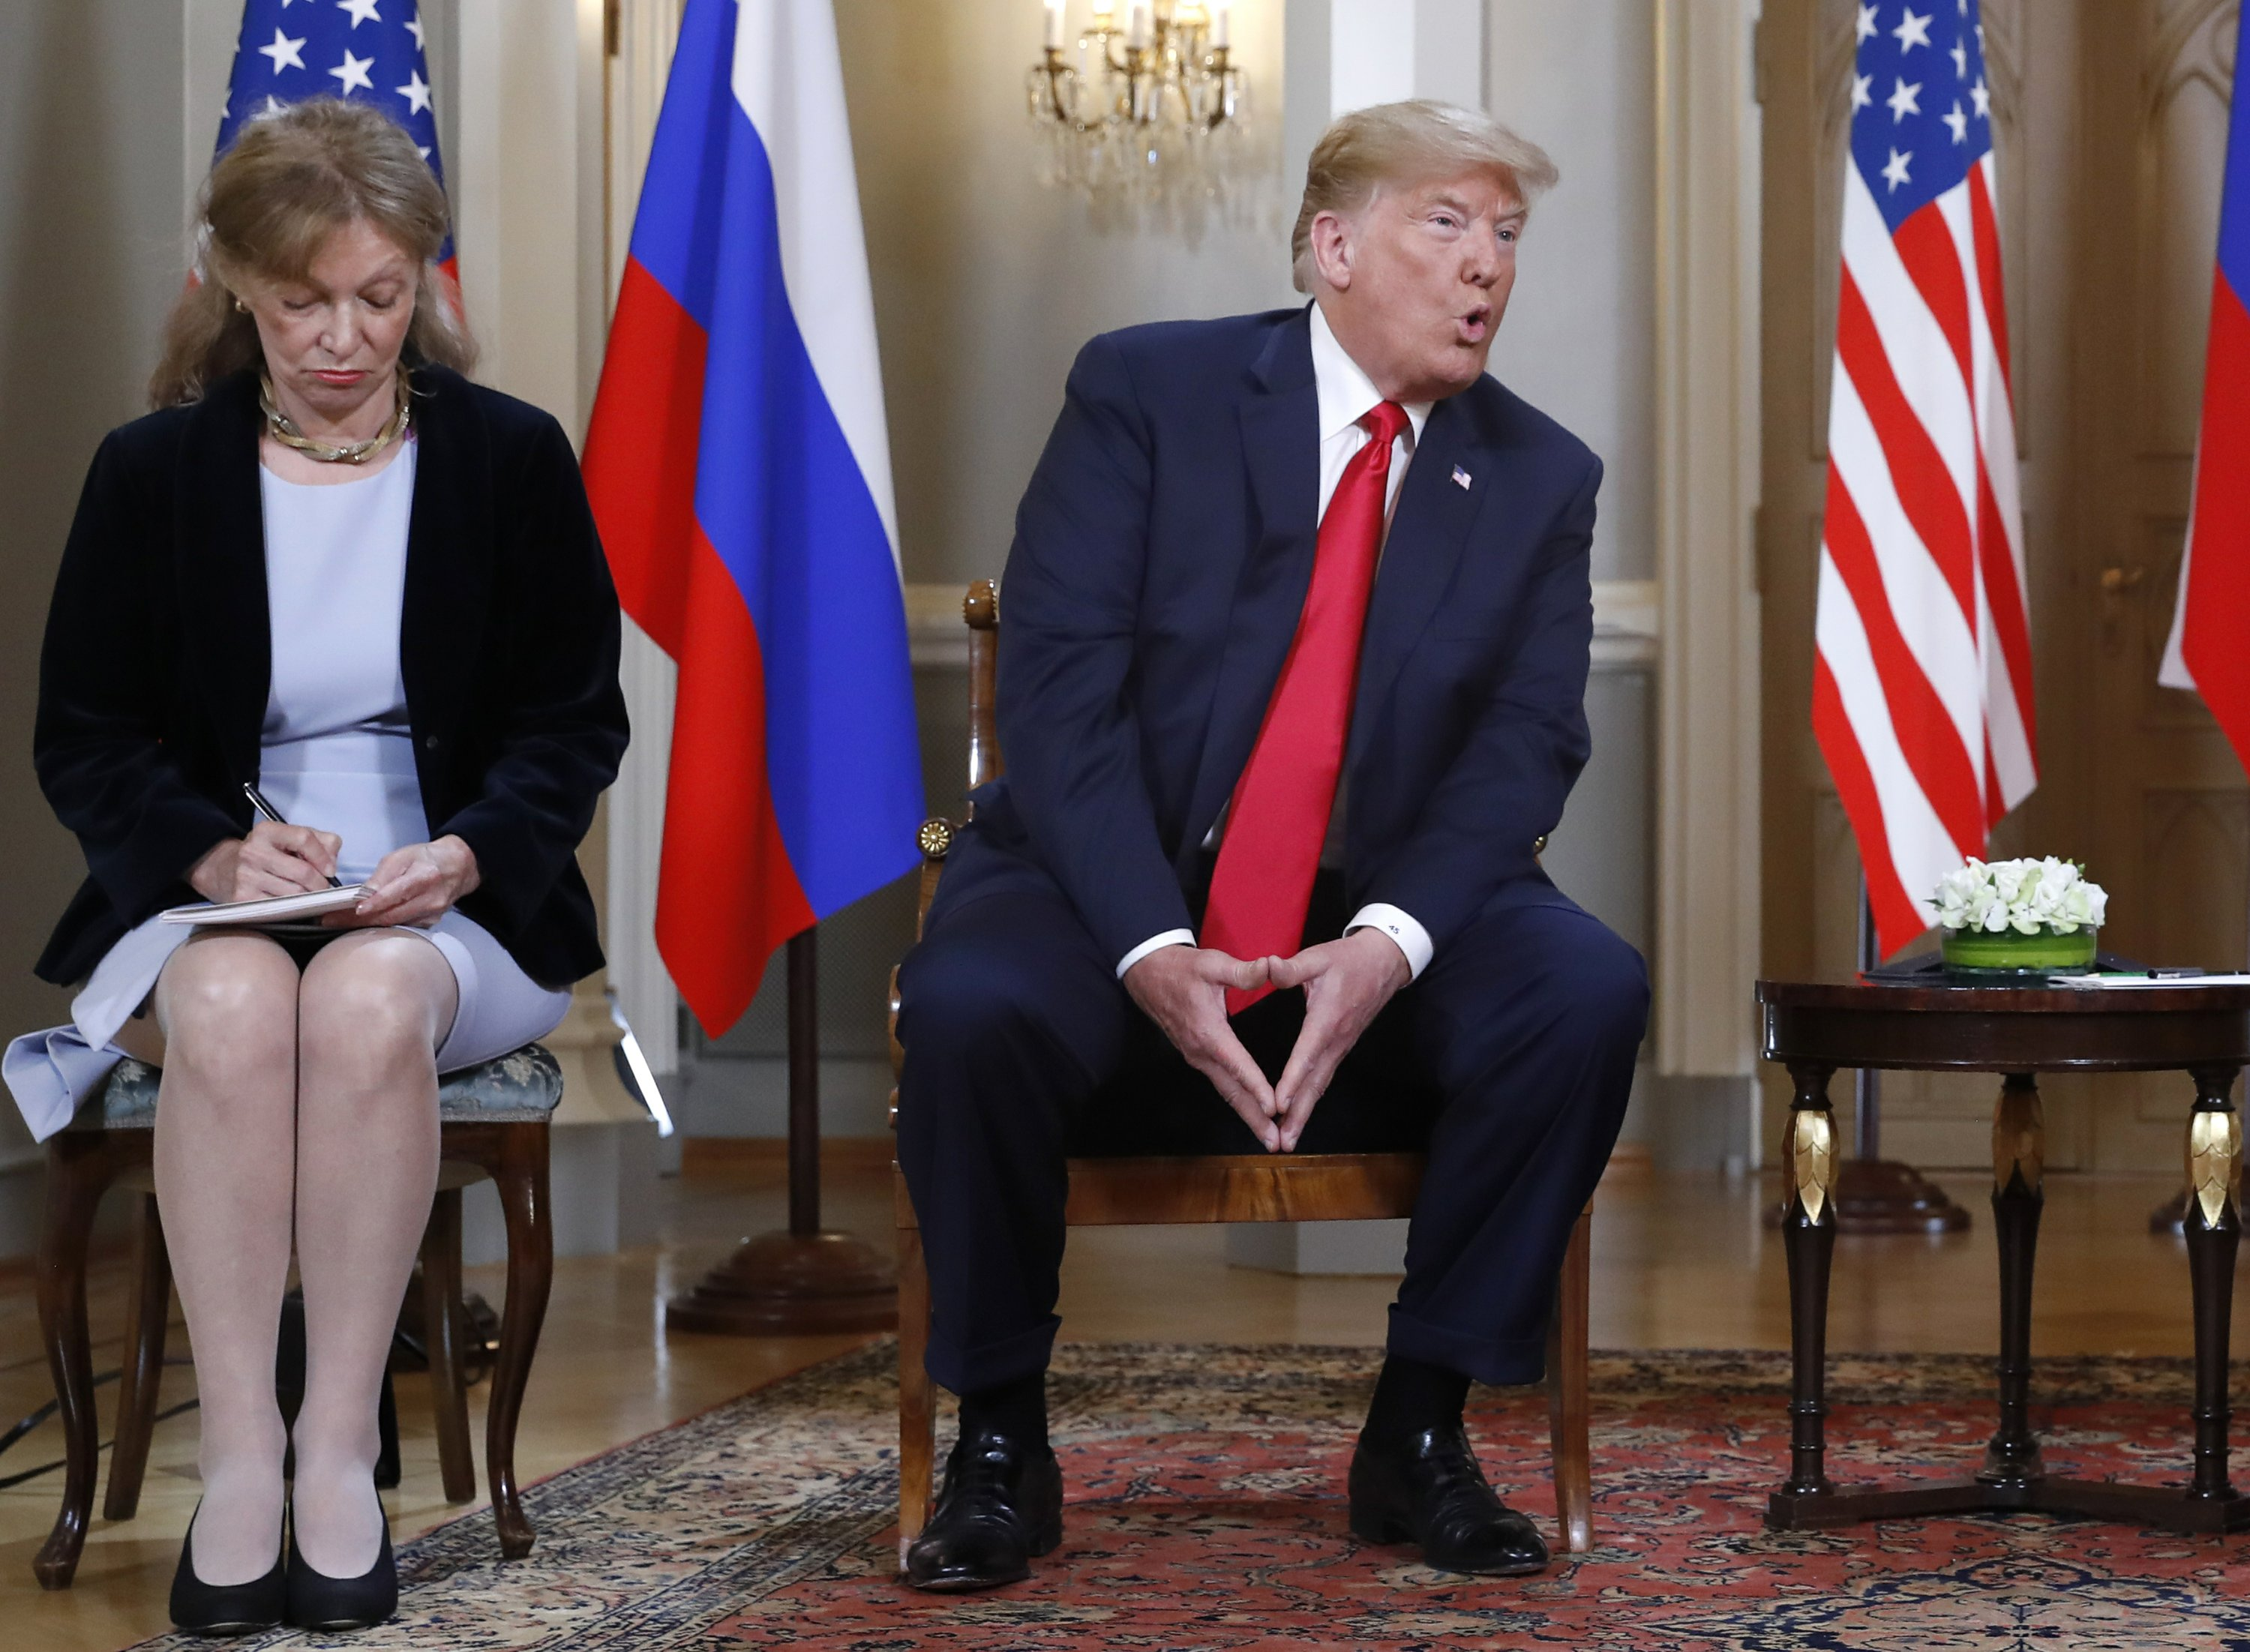 Russia slams proposal to question Trump summit...